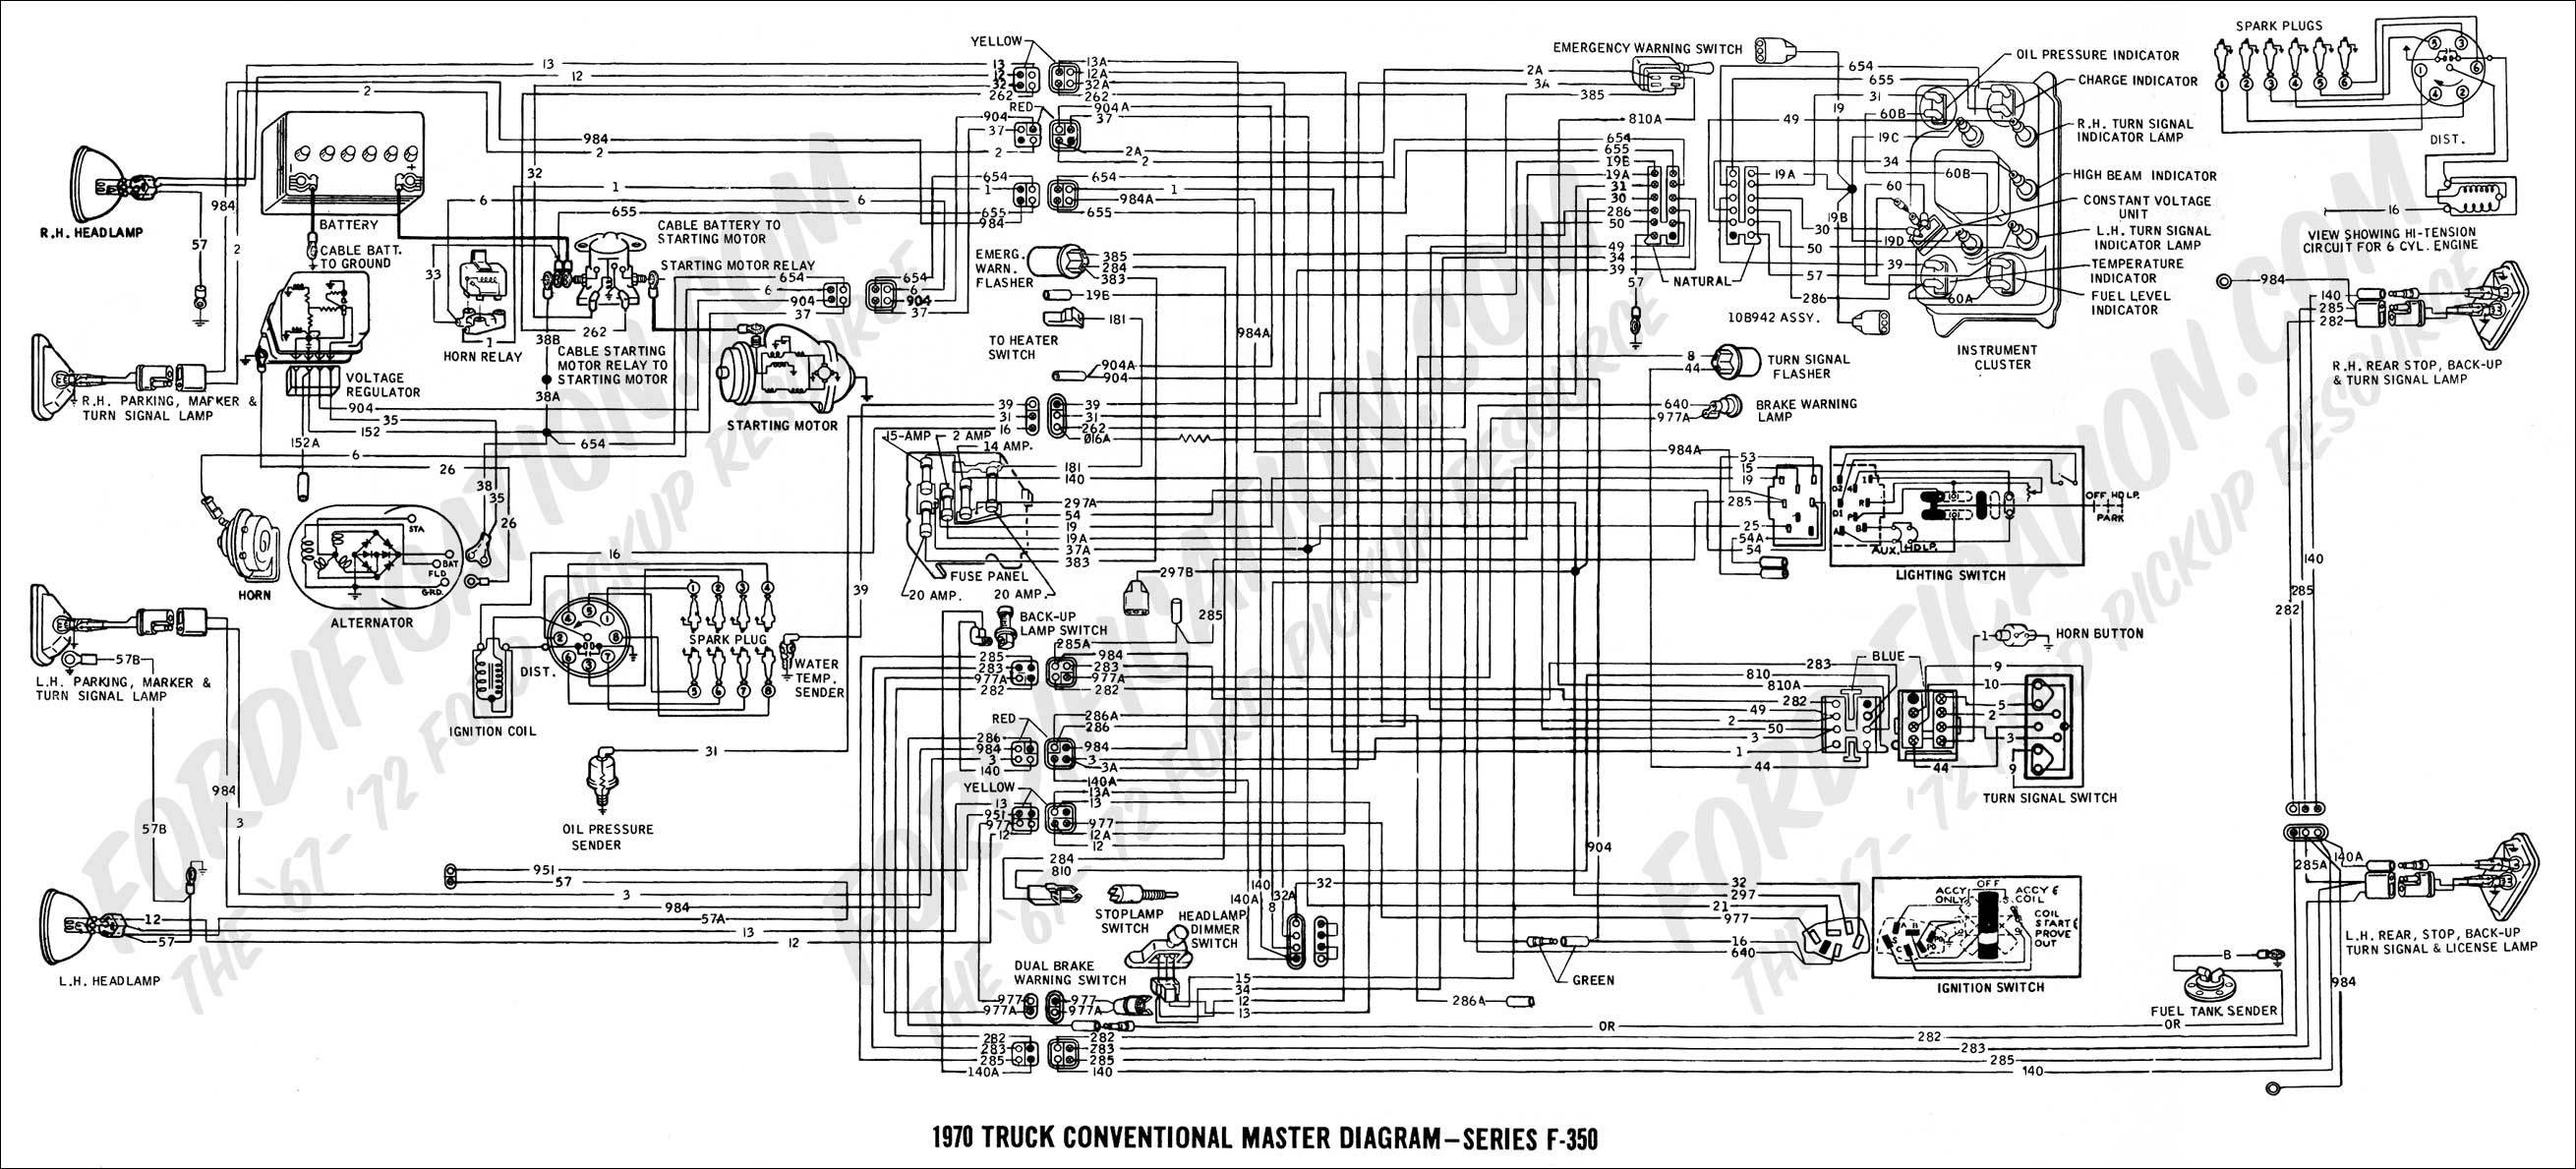 2001 ford Explorer Sport Engine Diagram Bucket 2002 F350 Superduty Electrical Wiring Diagrams Wiring Info • Of 2001 ford Explorer Sport Engine Diagram